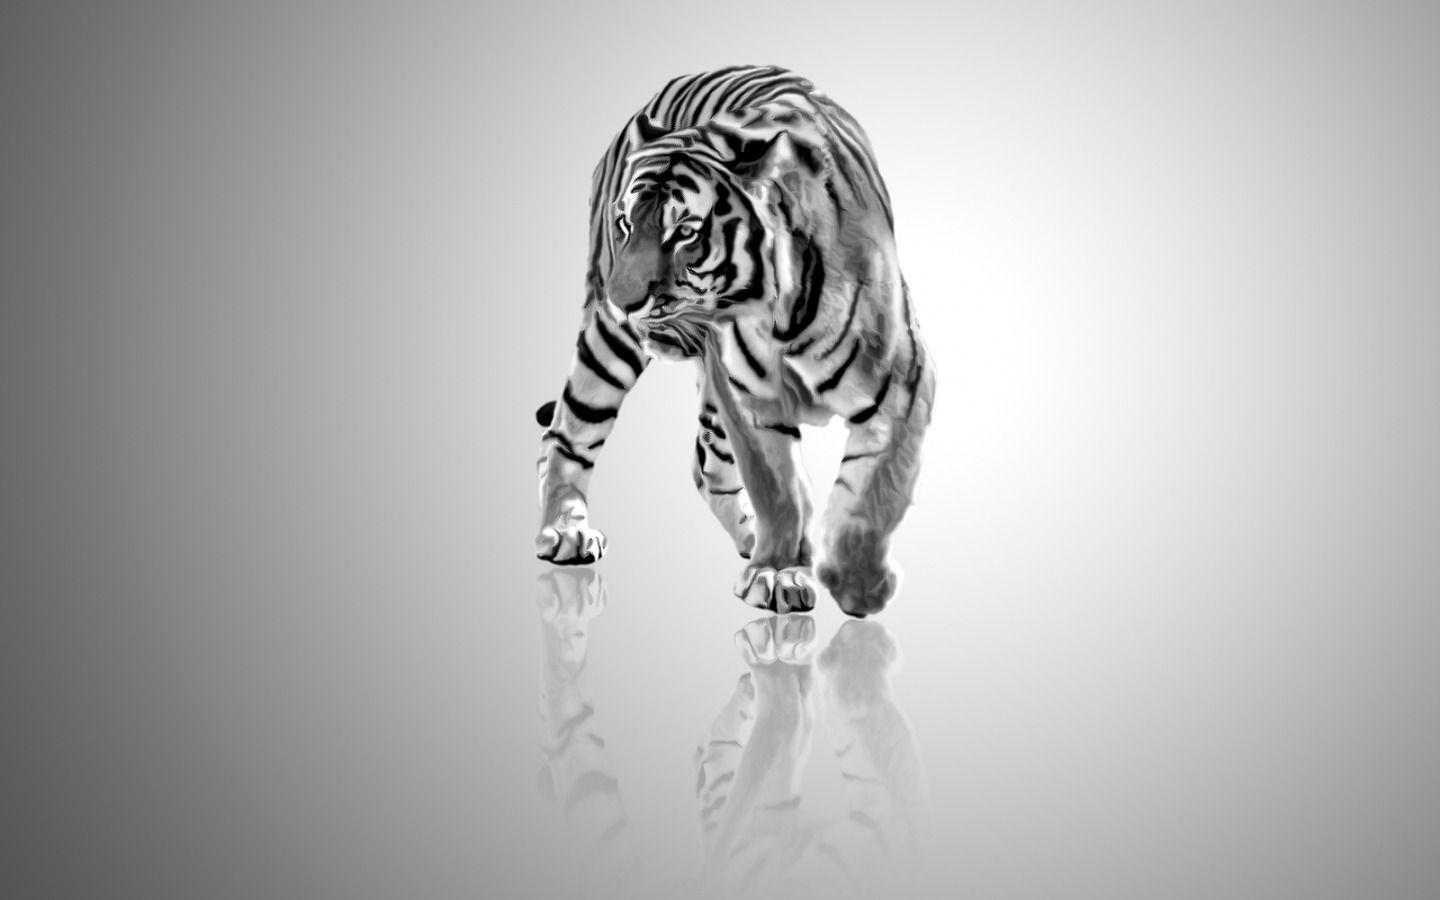 wallpaper hd white tiger - photo #34